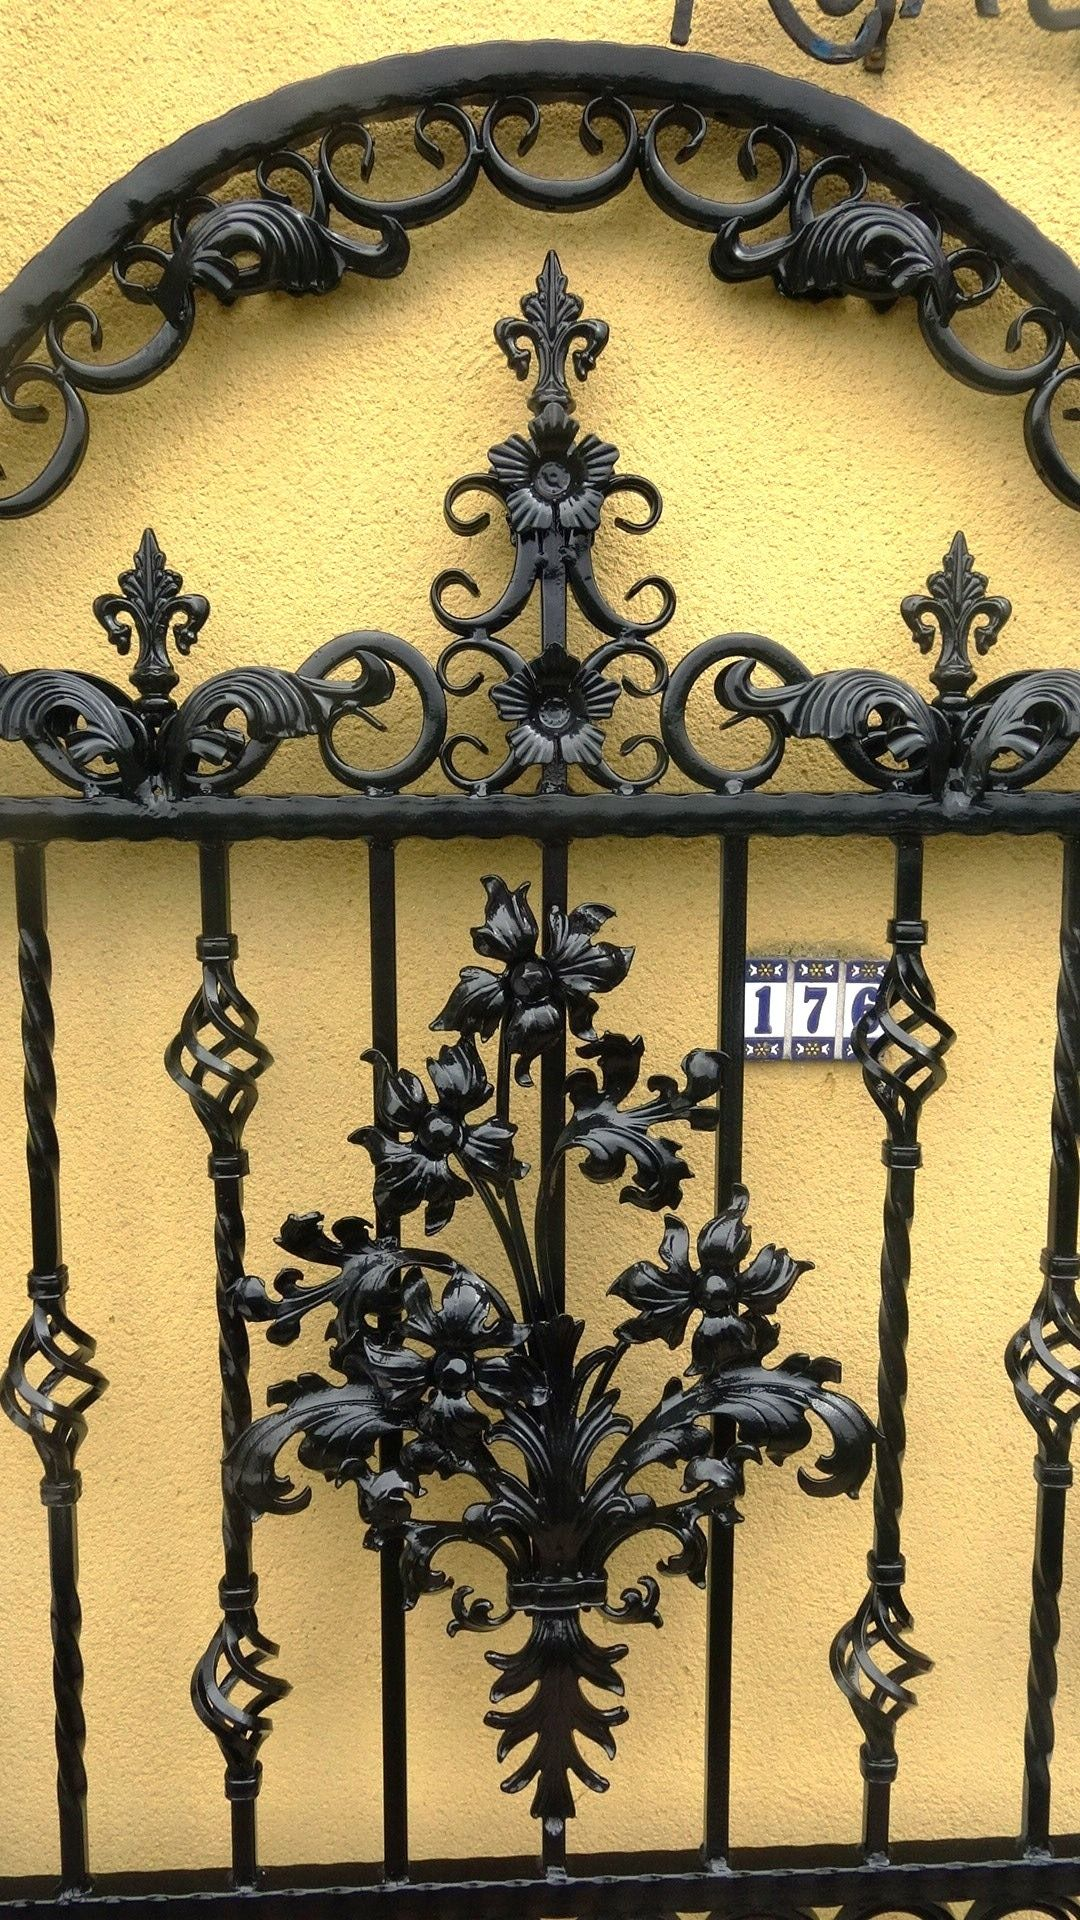 Pin by Vladan Nela on Kovano gvožđe | Pinterest | Wrought iron gates ...